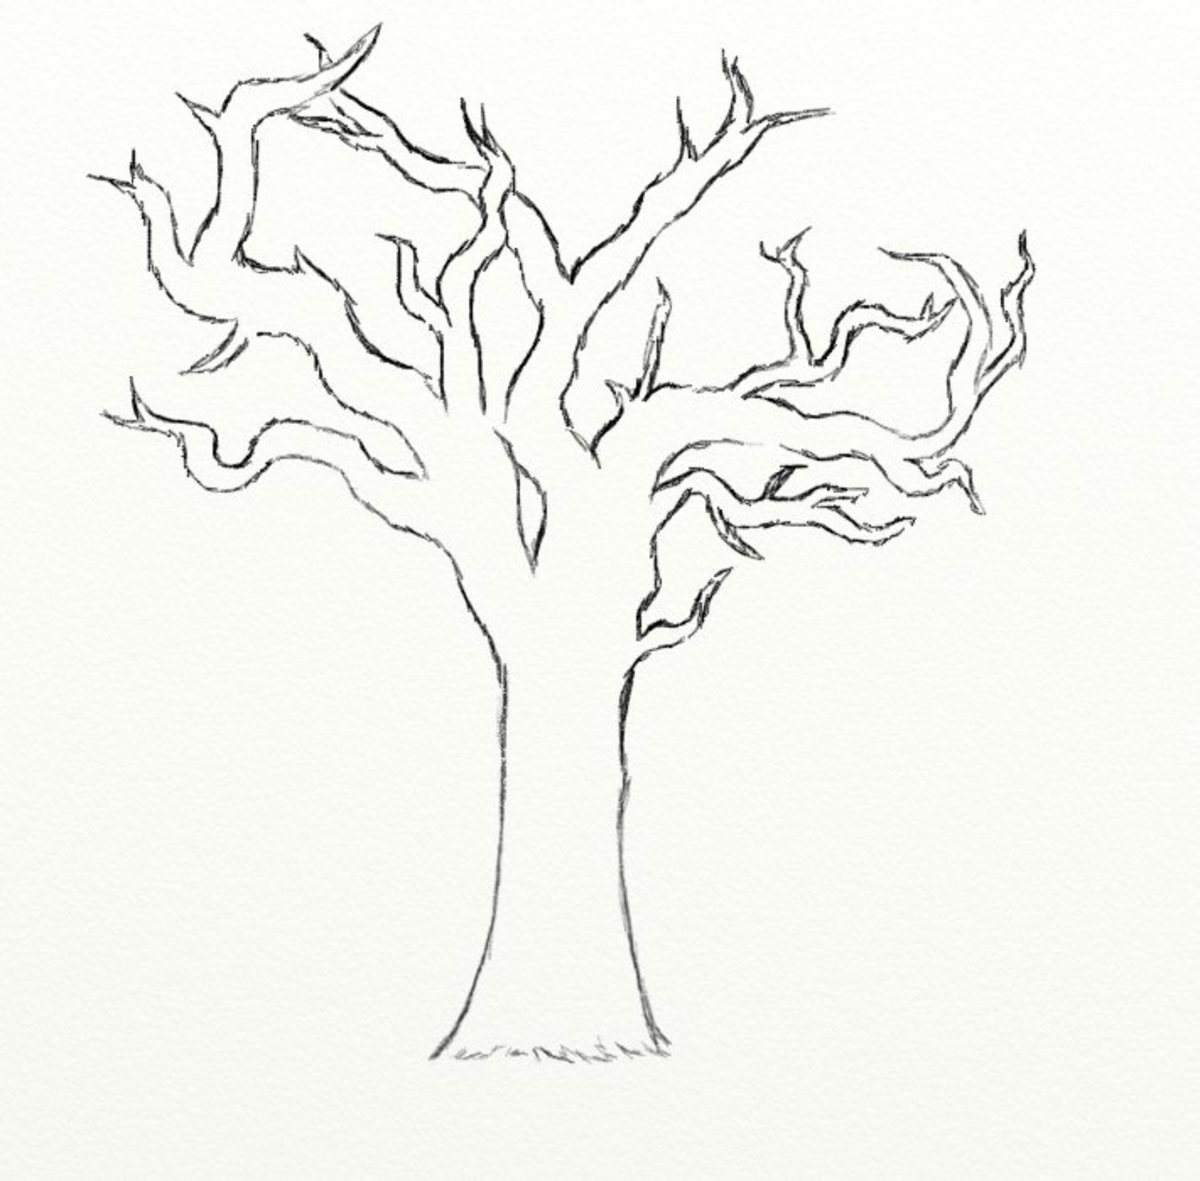 Charmant Just Draw In Some Branches To Your Tree. Try To Make Your Tree Look As Full  As Possible. There Are No Leaves So Itu0027s A Bit Bare Looking To Begin With.